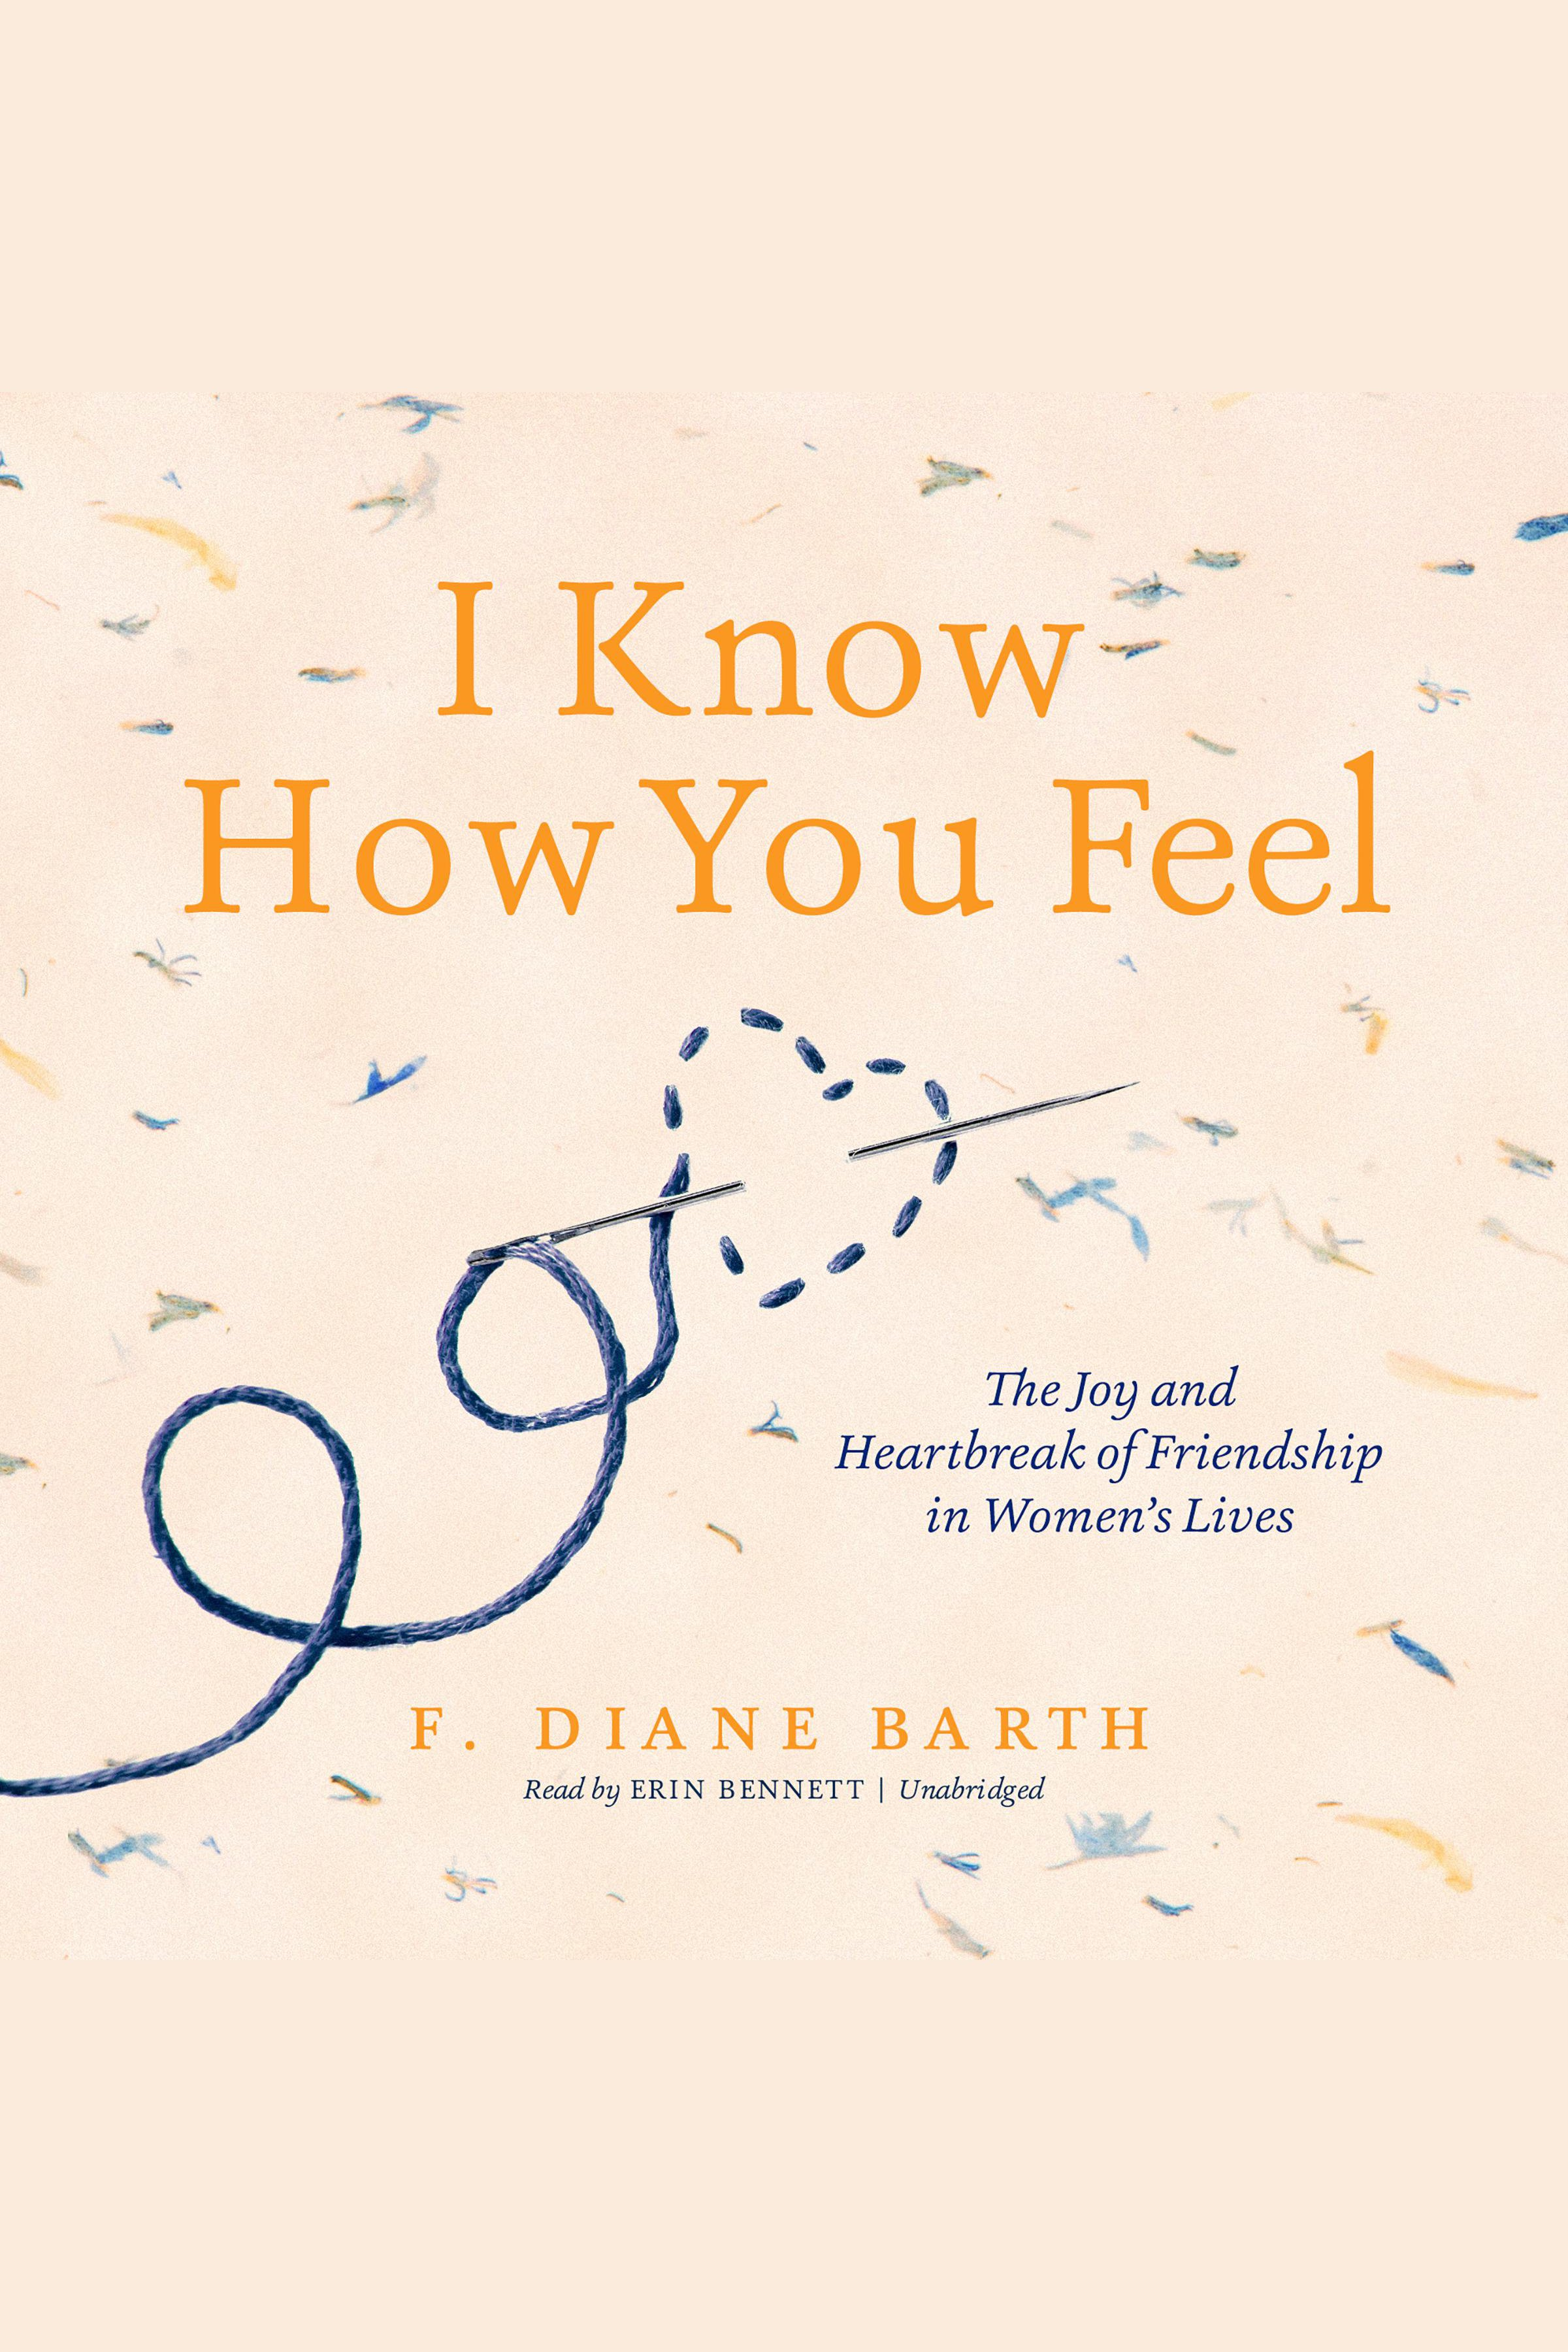 I Know How You Feel The Joy and Heartbreak of Friendship in Women's Lives cover image